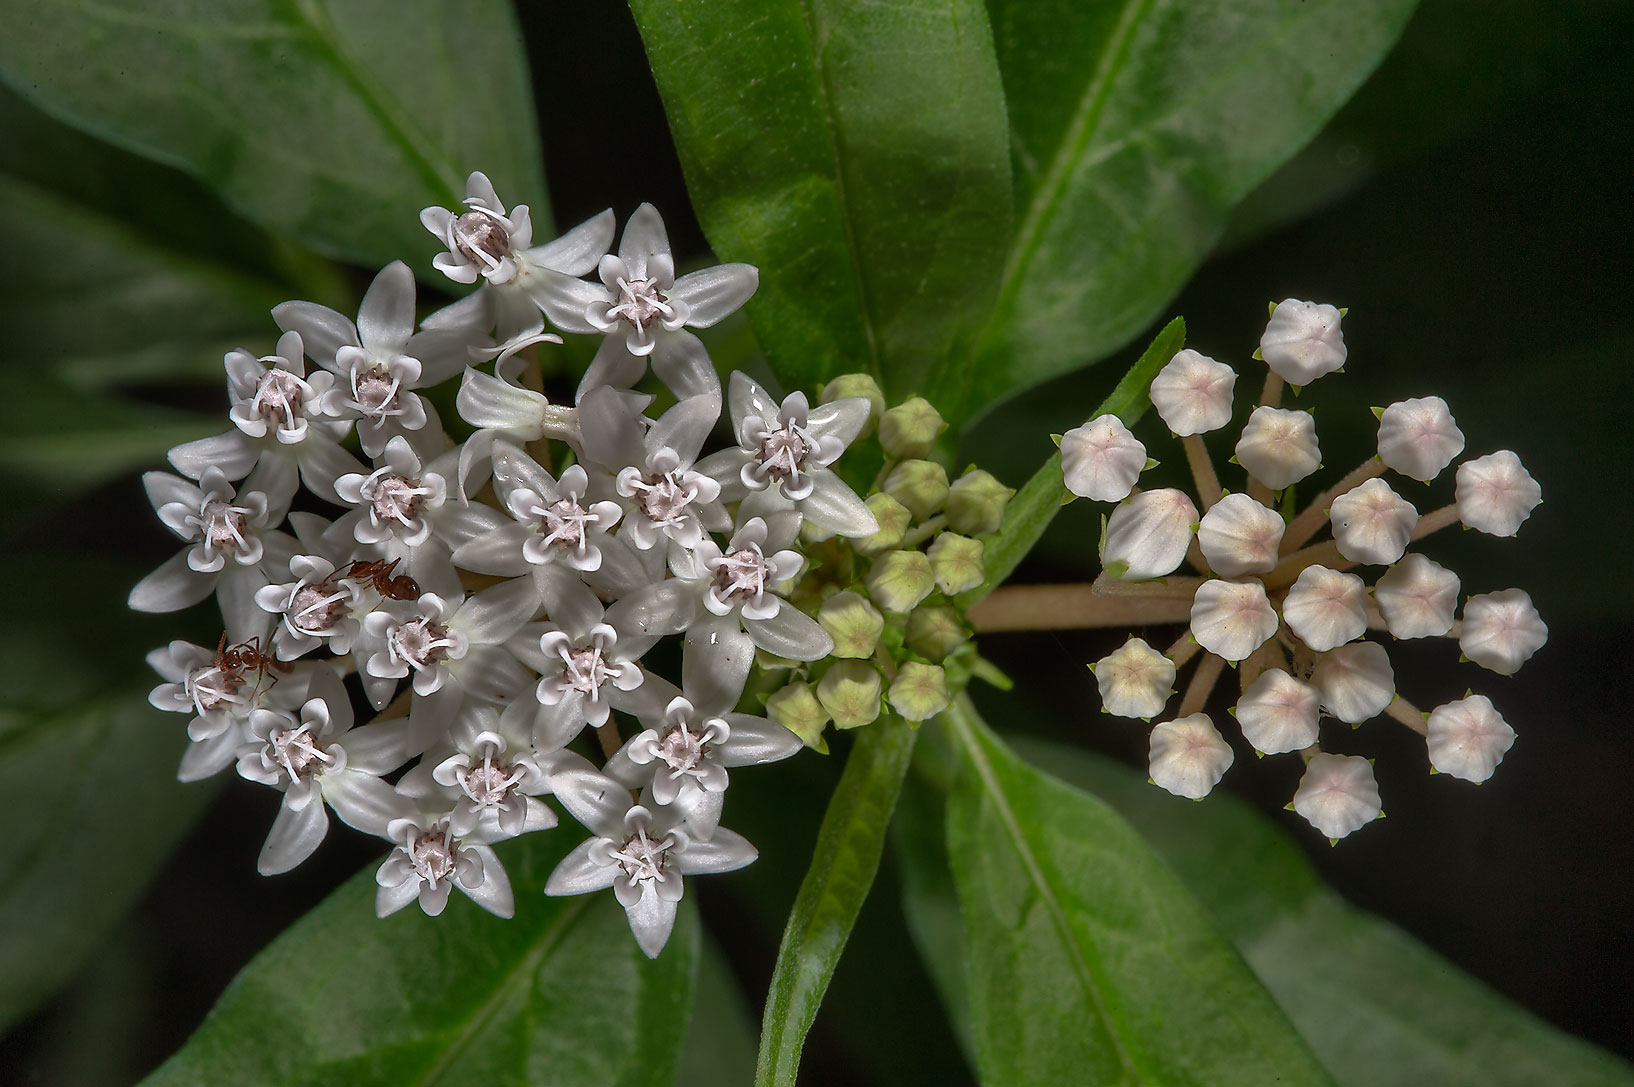 Shore milkweed (Asclepias perennis) near a...Gardens. Humble (Houston area), Texas